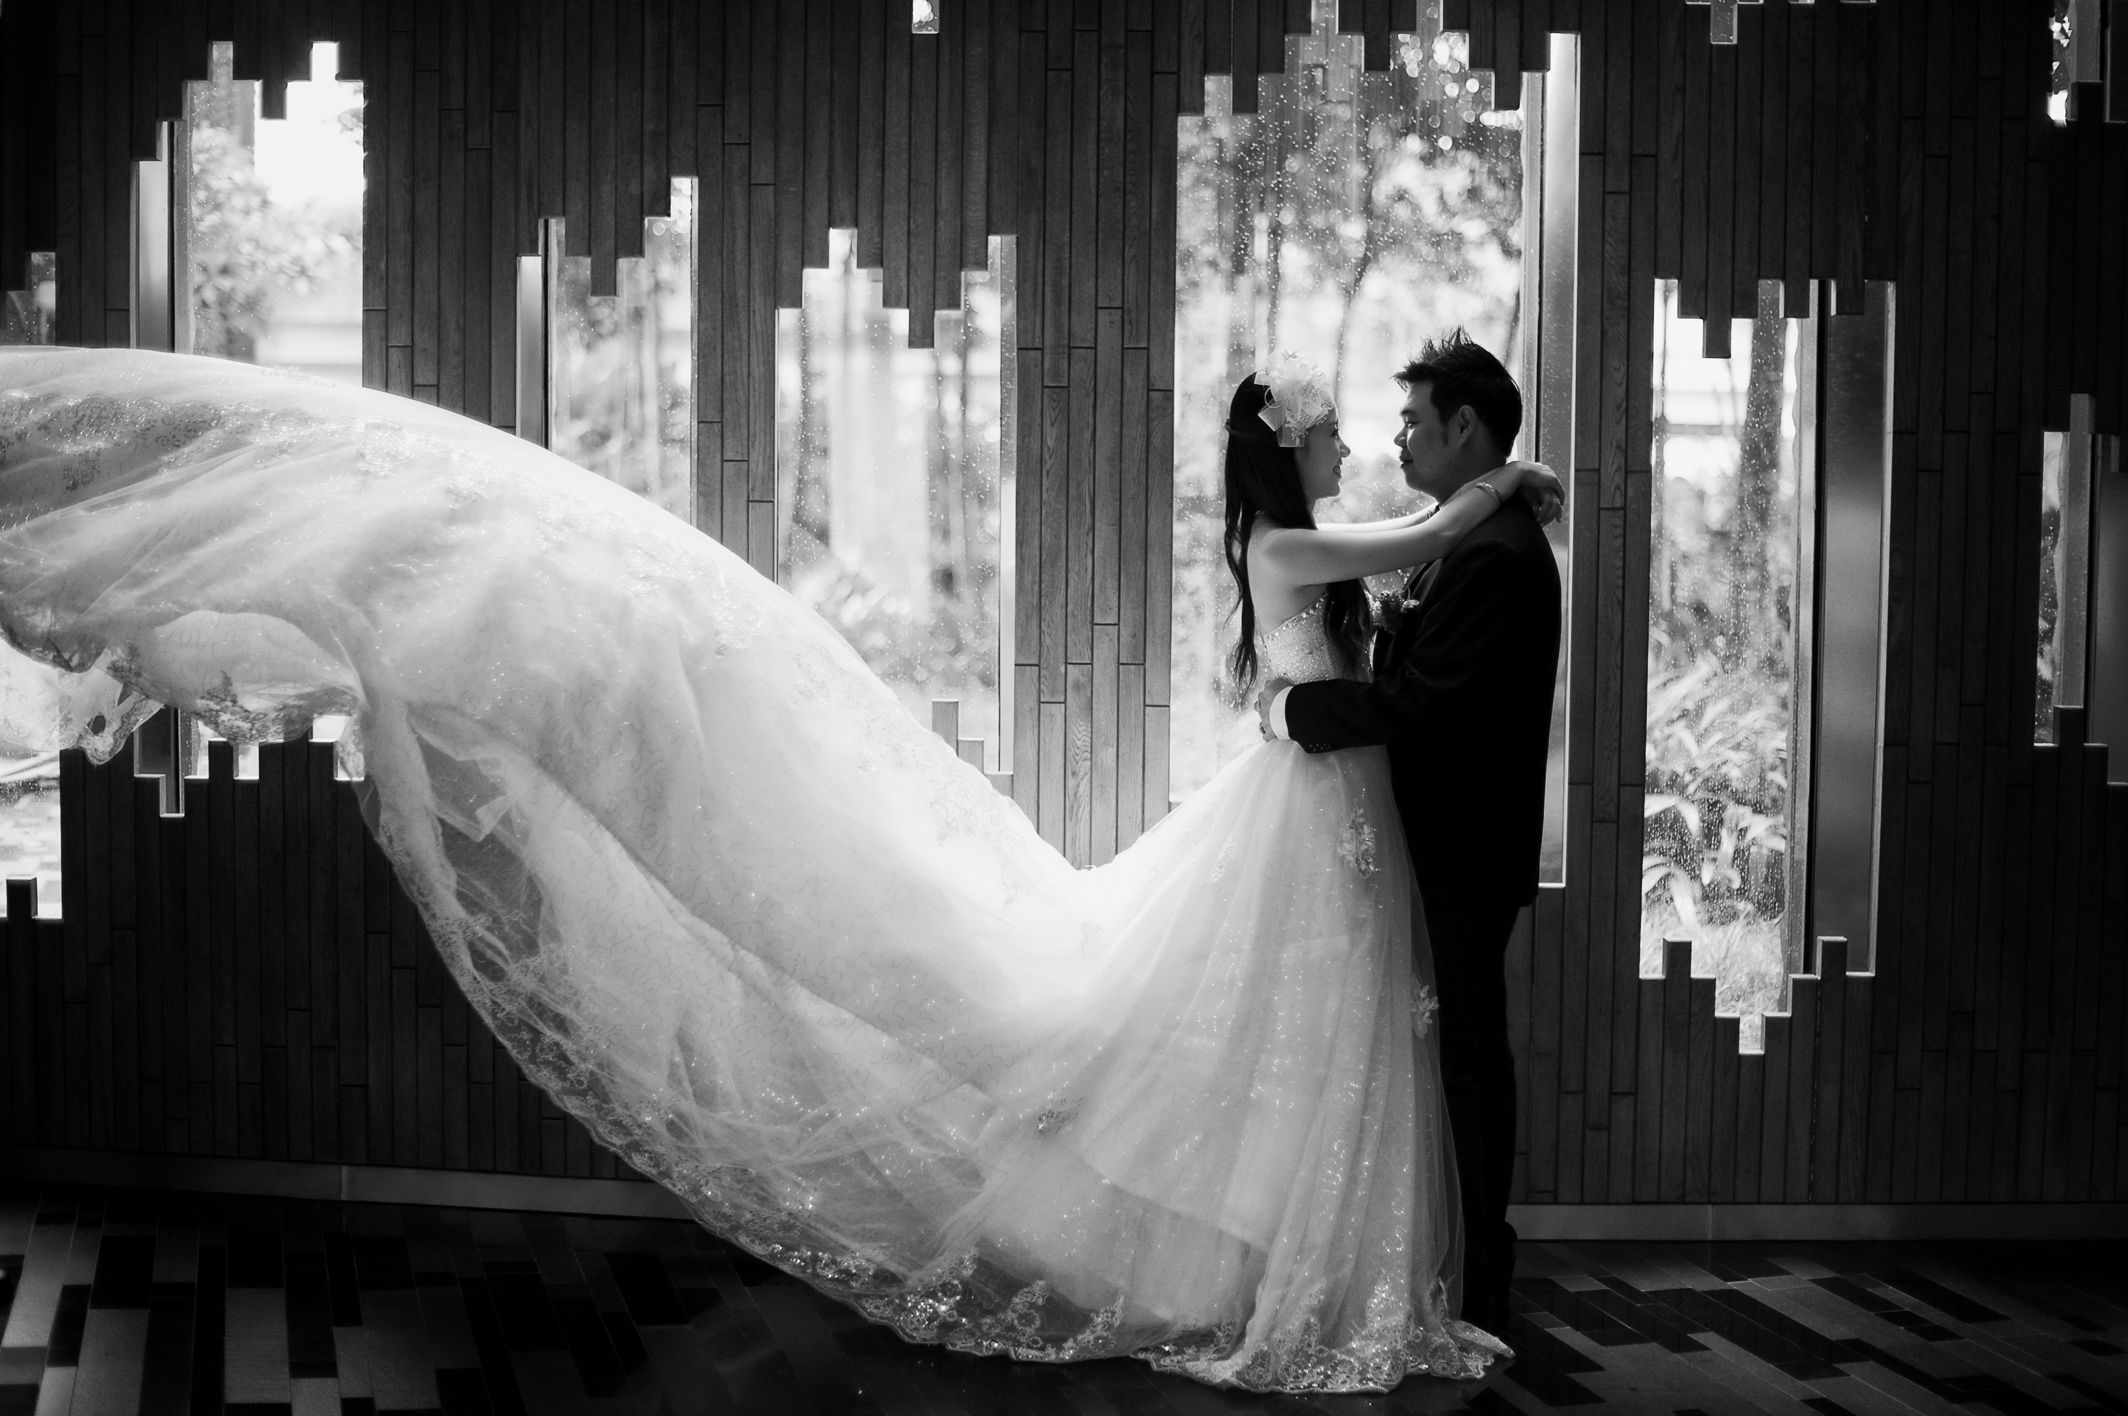 Depthofeel Professional Wedding Photography Services We Capture